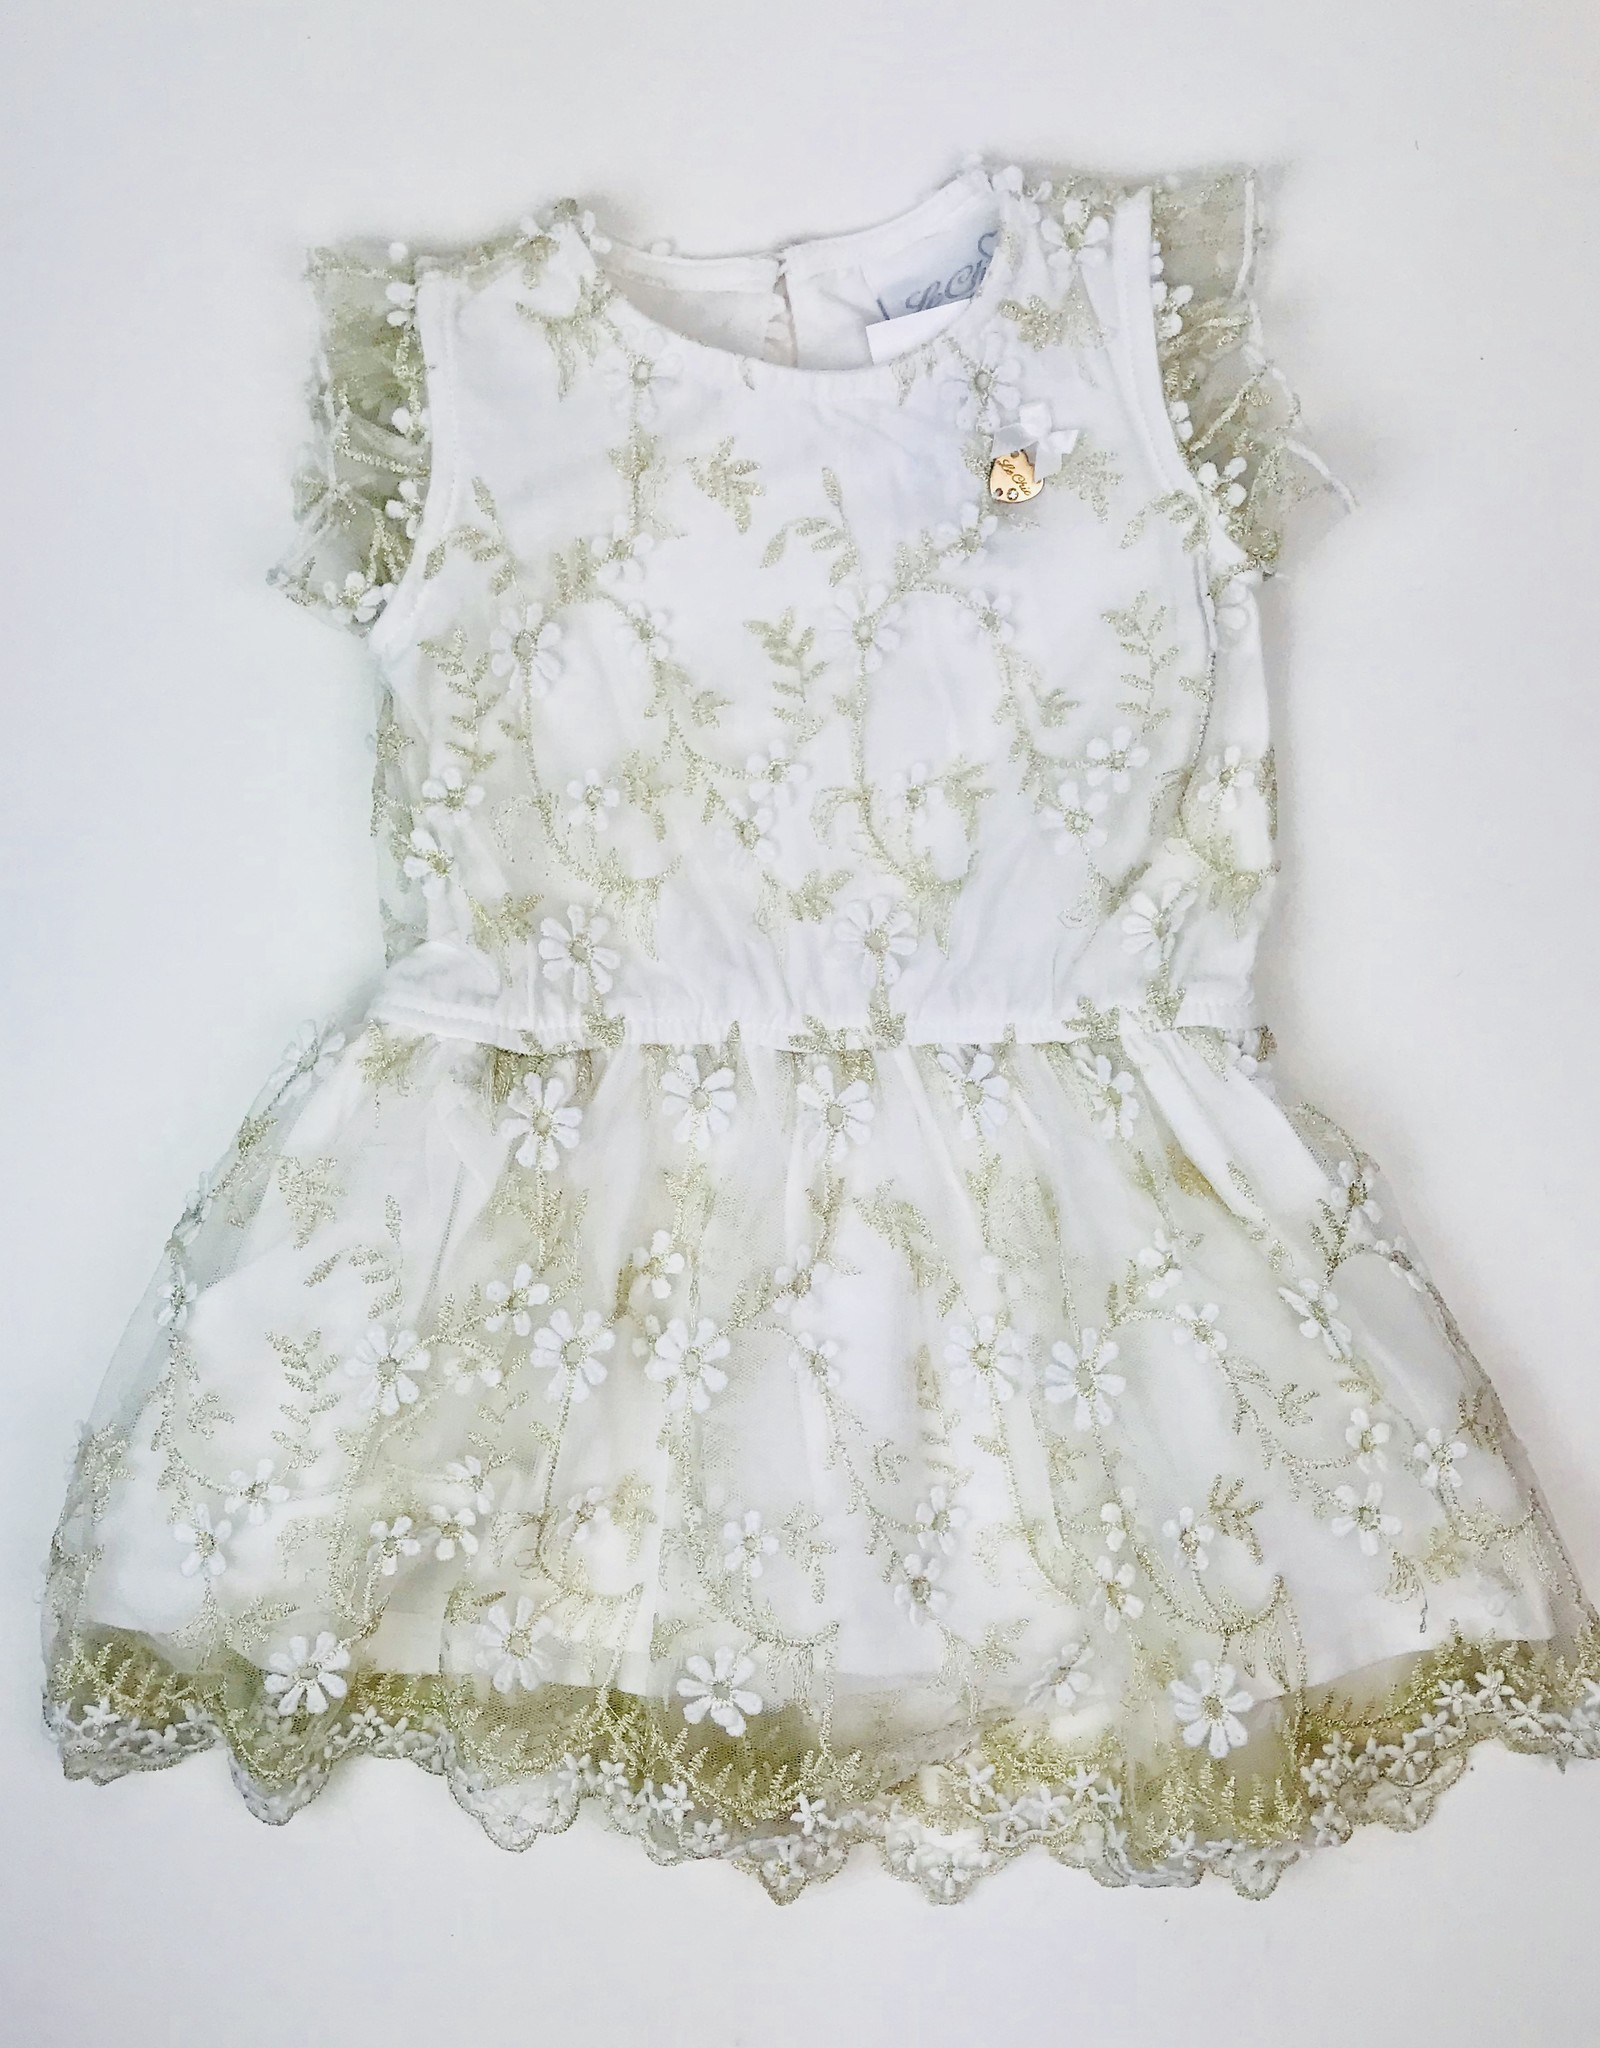 Le Chic Cream Tulle Gold Embroidered Flowers